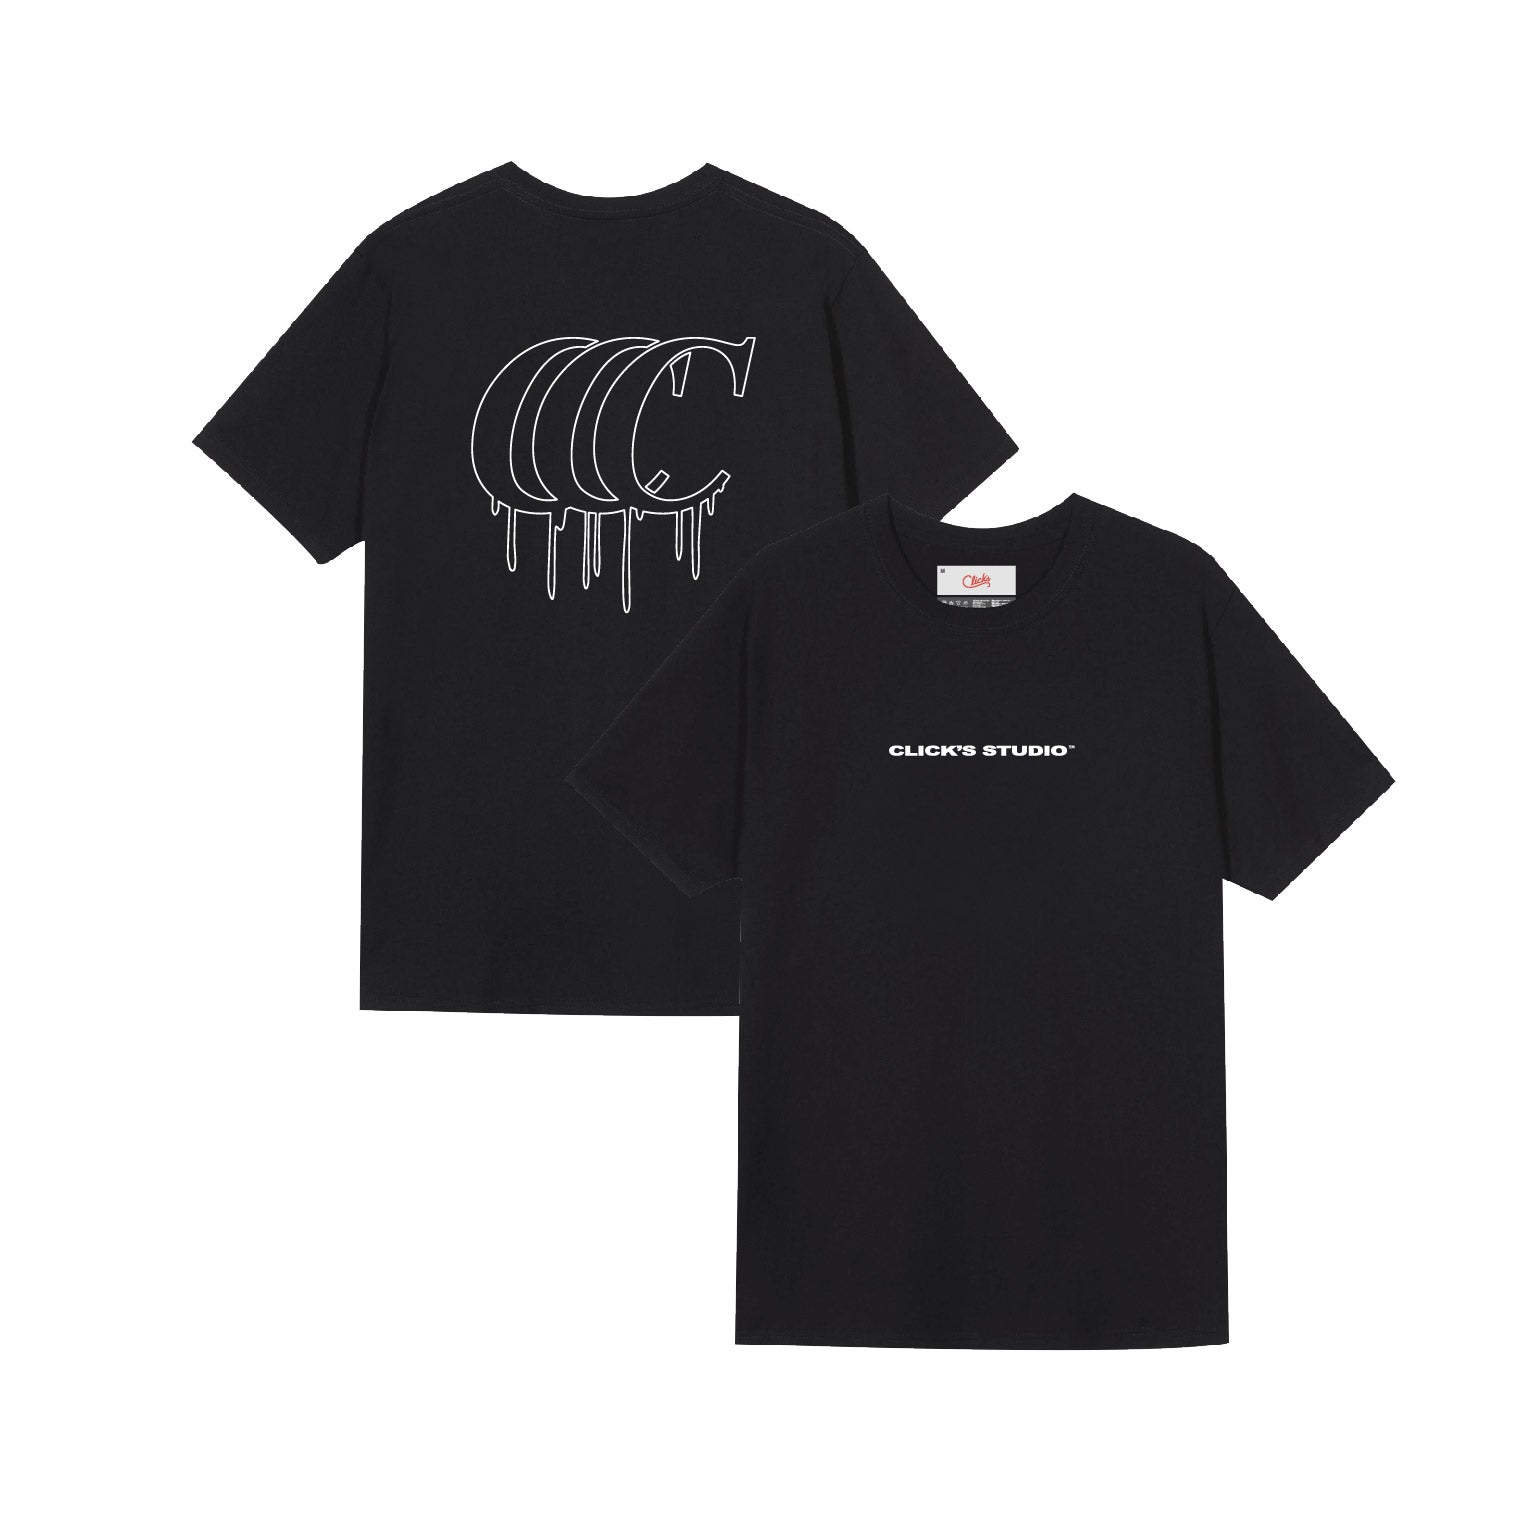 CCC Club Melting S/S Tee